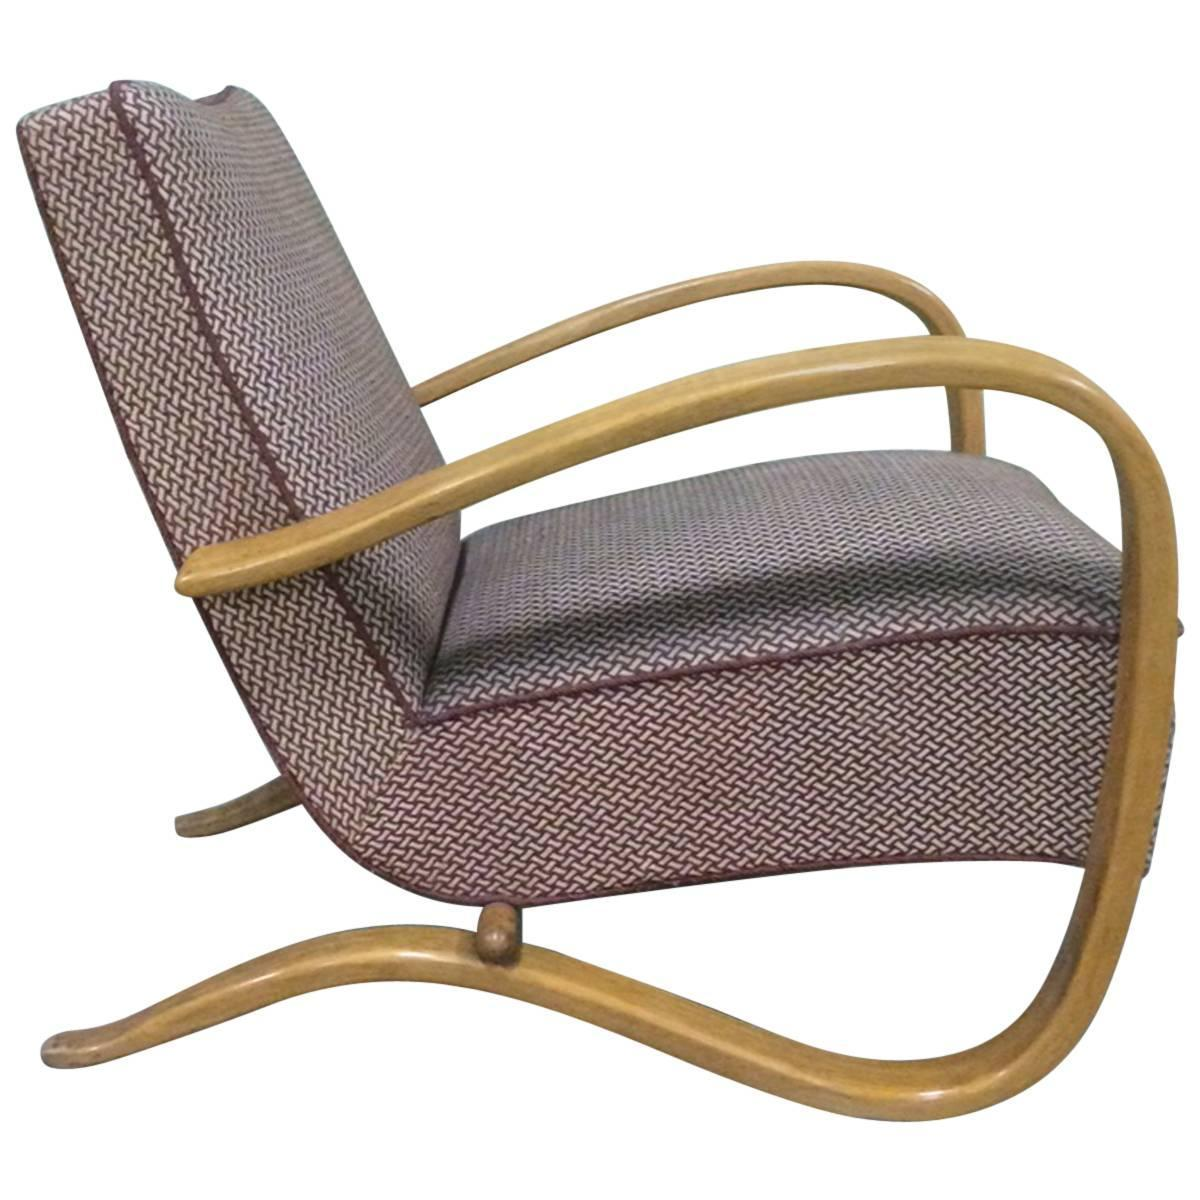 Single lounge chair by halabala for sale at 1stdibs for Single lounge chairs for sale